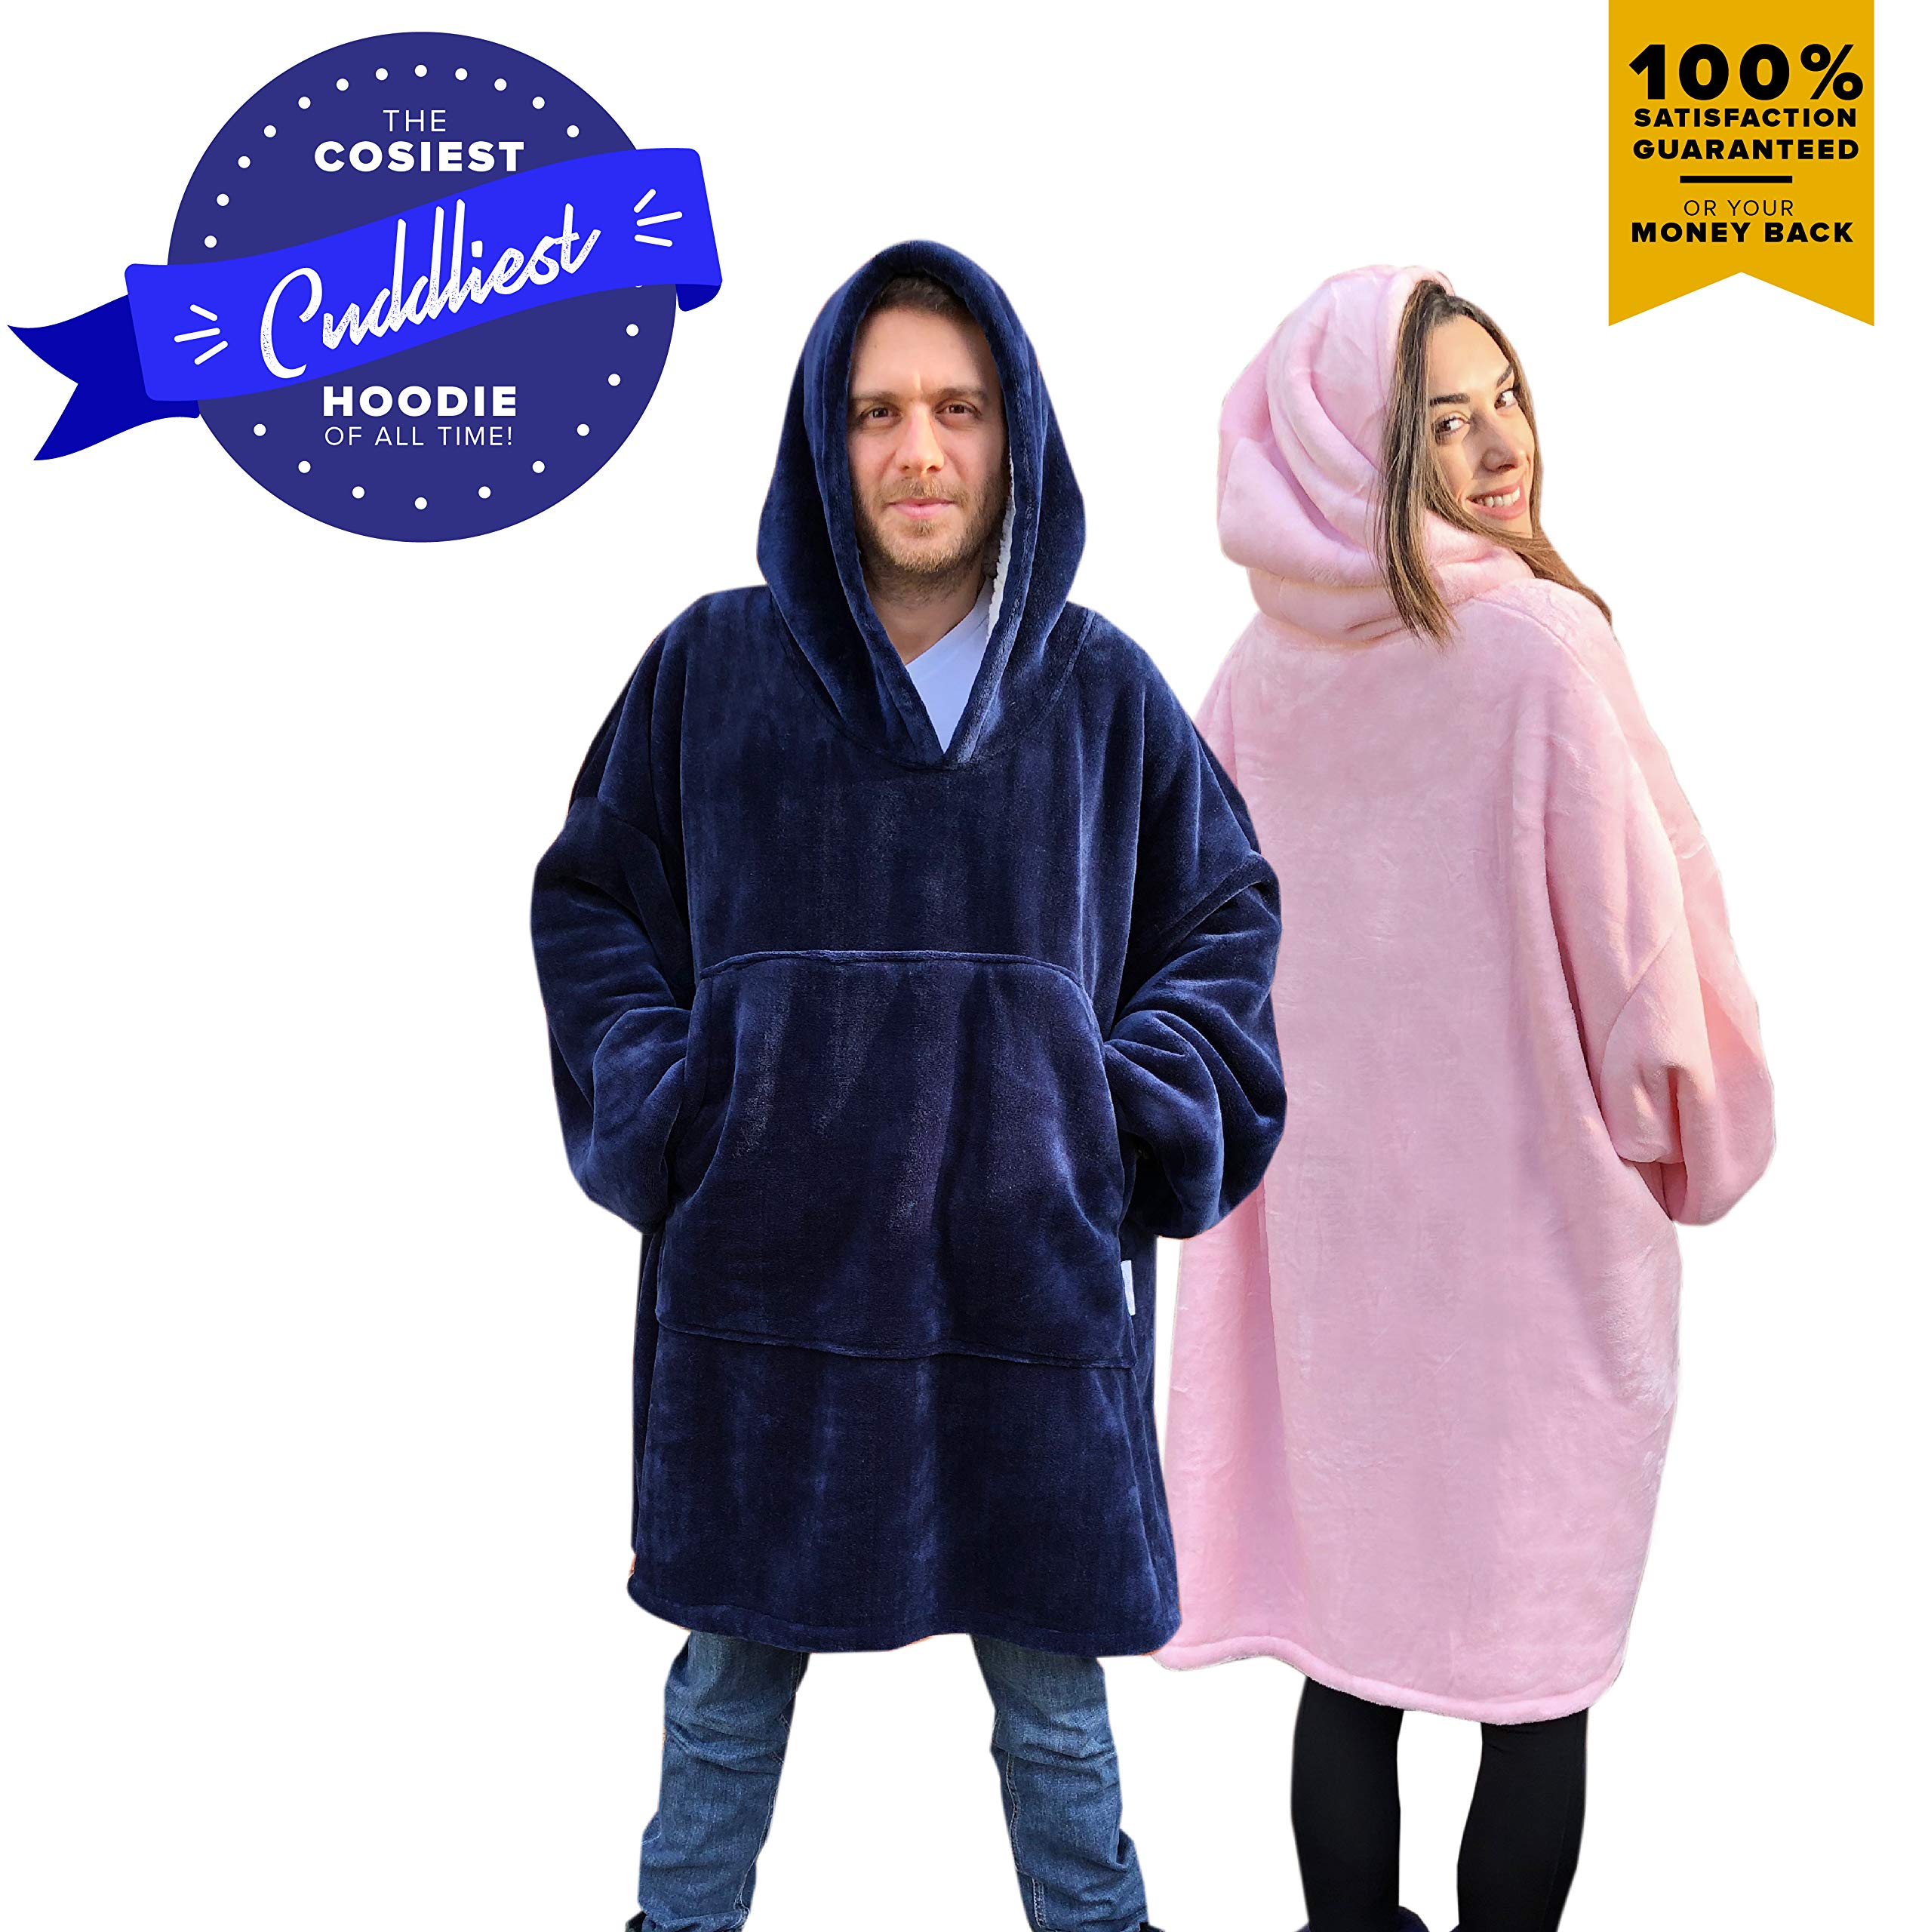 Snuggle Hoodie-Sweatshirt Blanket. The Most Comfortable Wearable Sherpa Giant/Oversized Sweatshirt Blankets Hoodie with Large Pockets and Sleeves for Adults Men, Women, Teens and Kids (Blue and Pink)